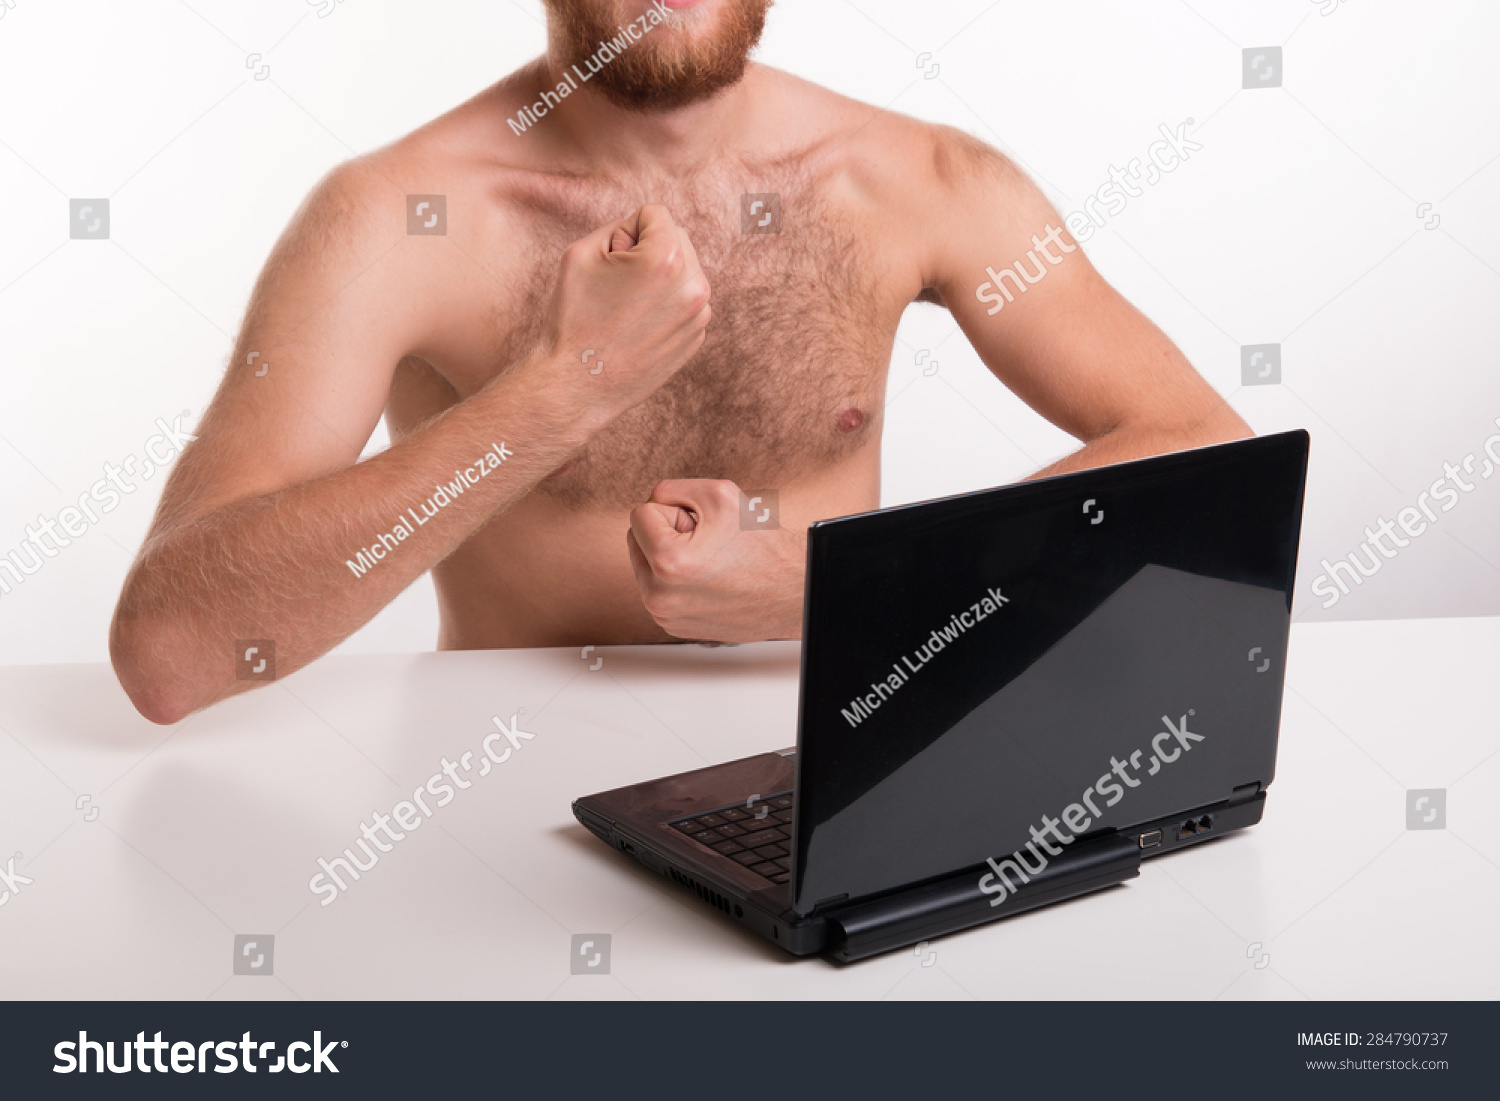 A man showing chest in front of webcam